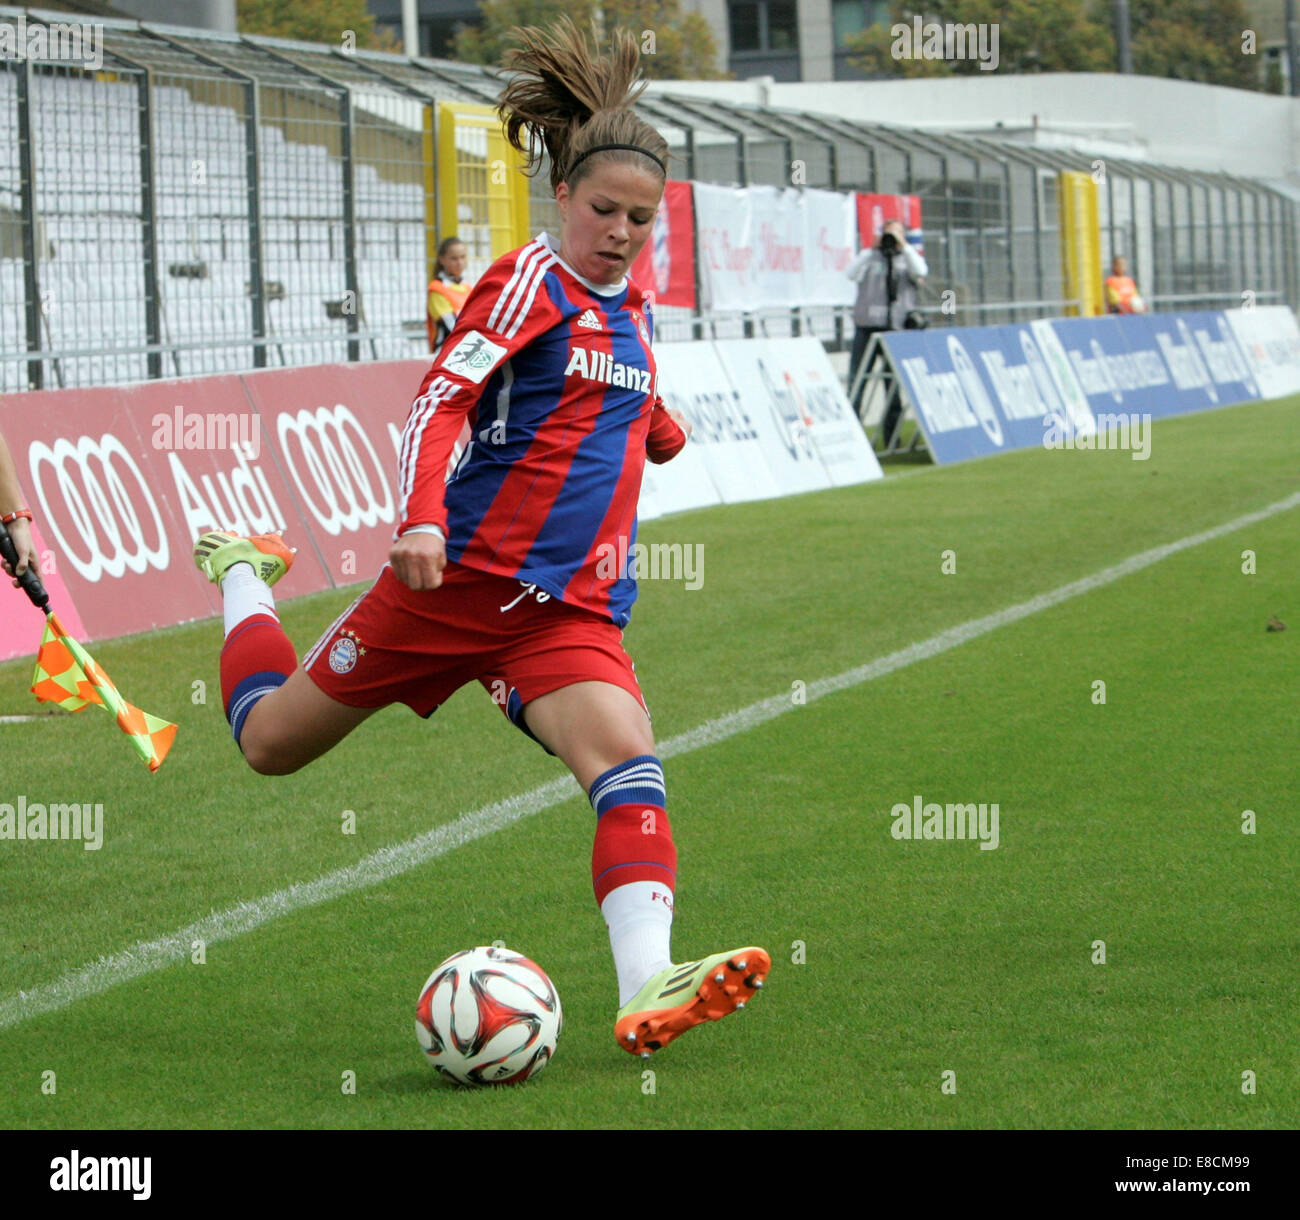 Muenchen, Bavaria, Germany. 5th Oct, 2014. 8 Melanie LEUPOLZ/Muenchen, .German woman soccer league, FC Bayern Muenchen - Stock Image